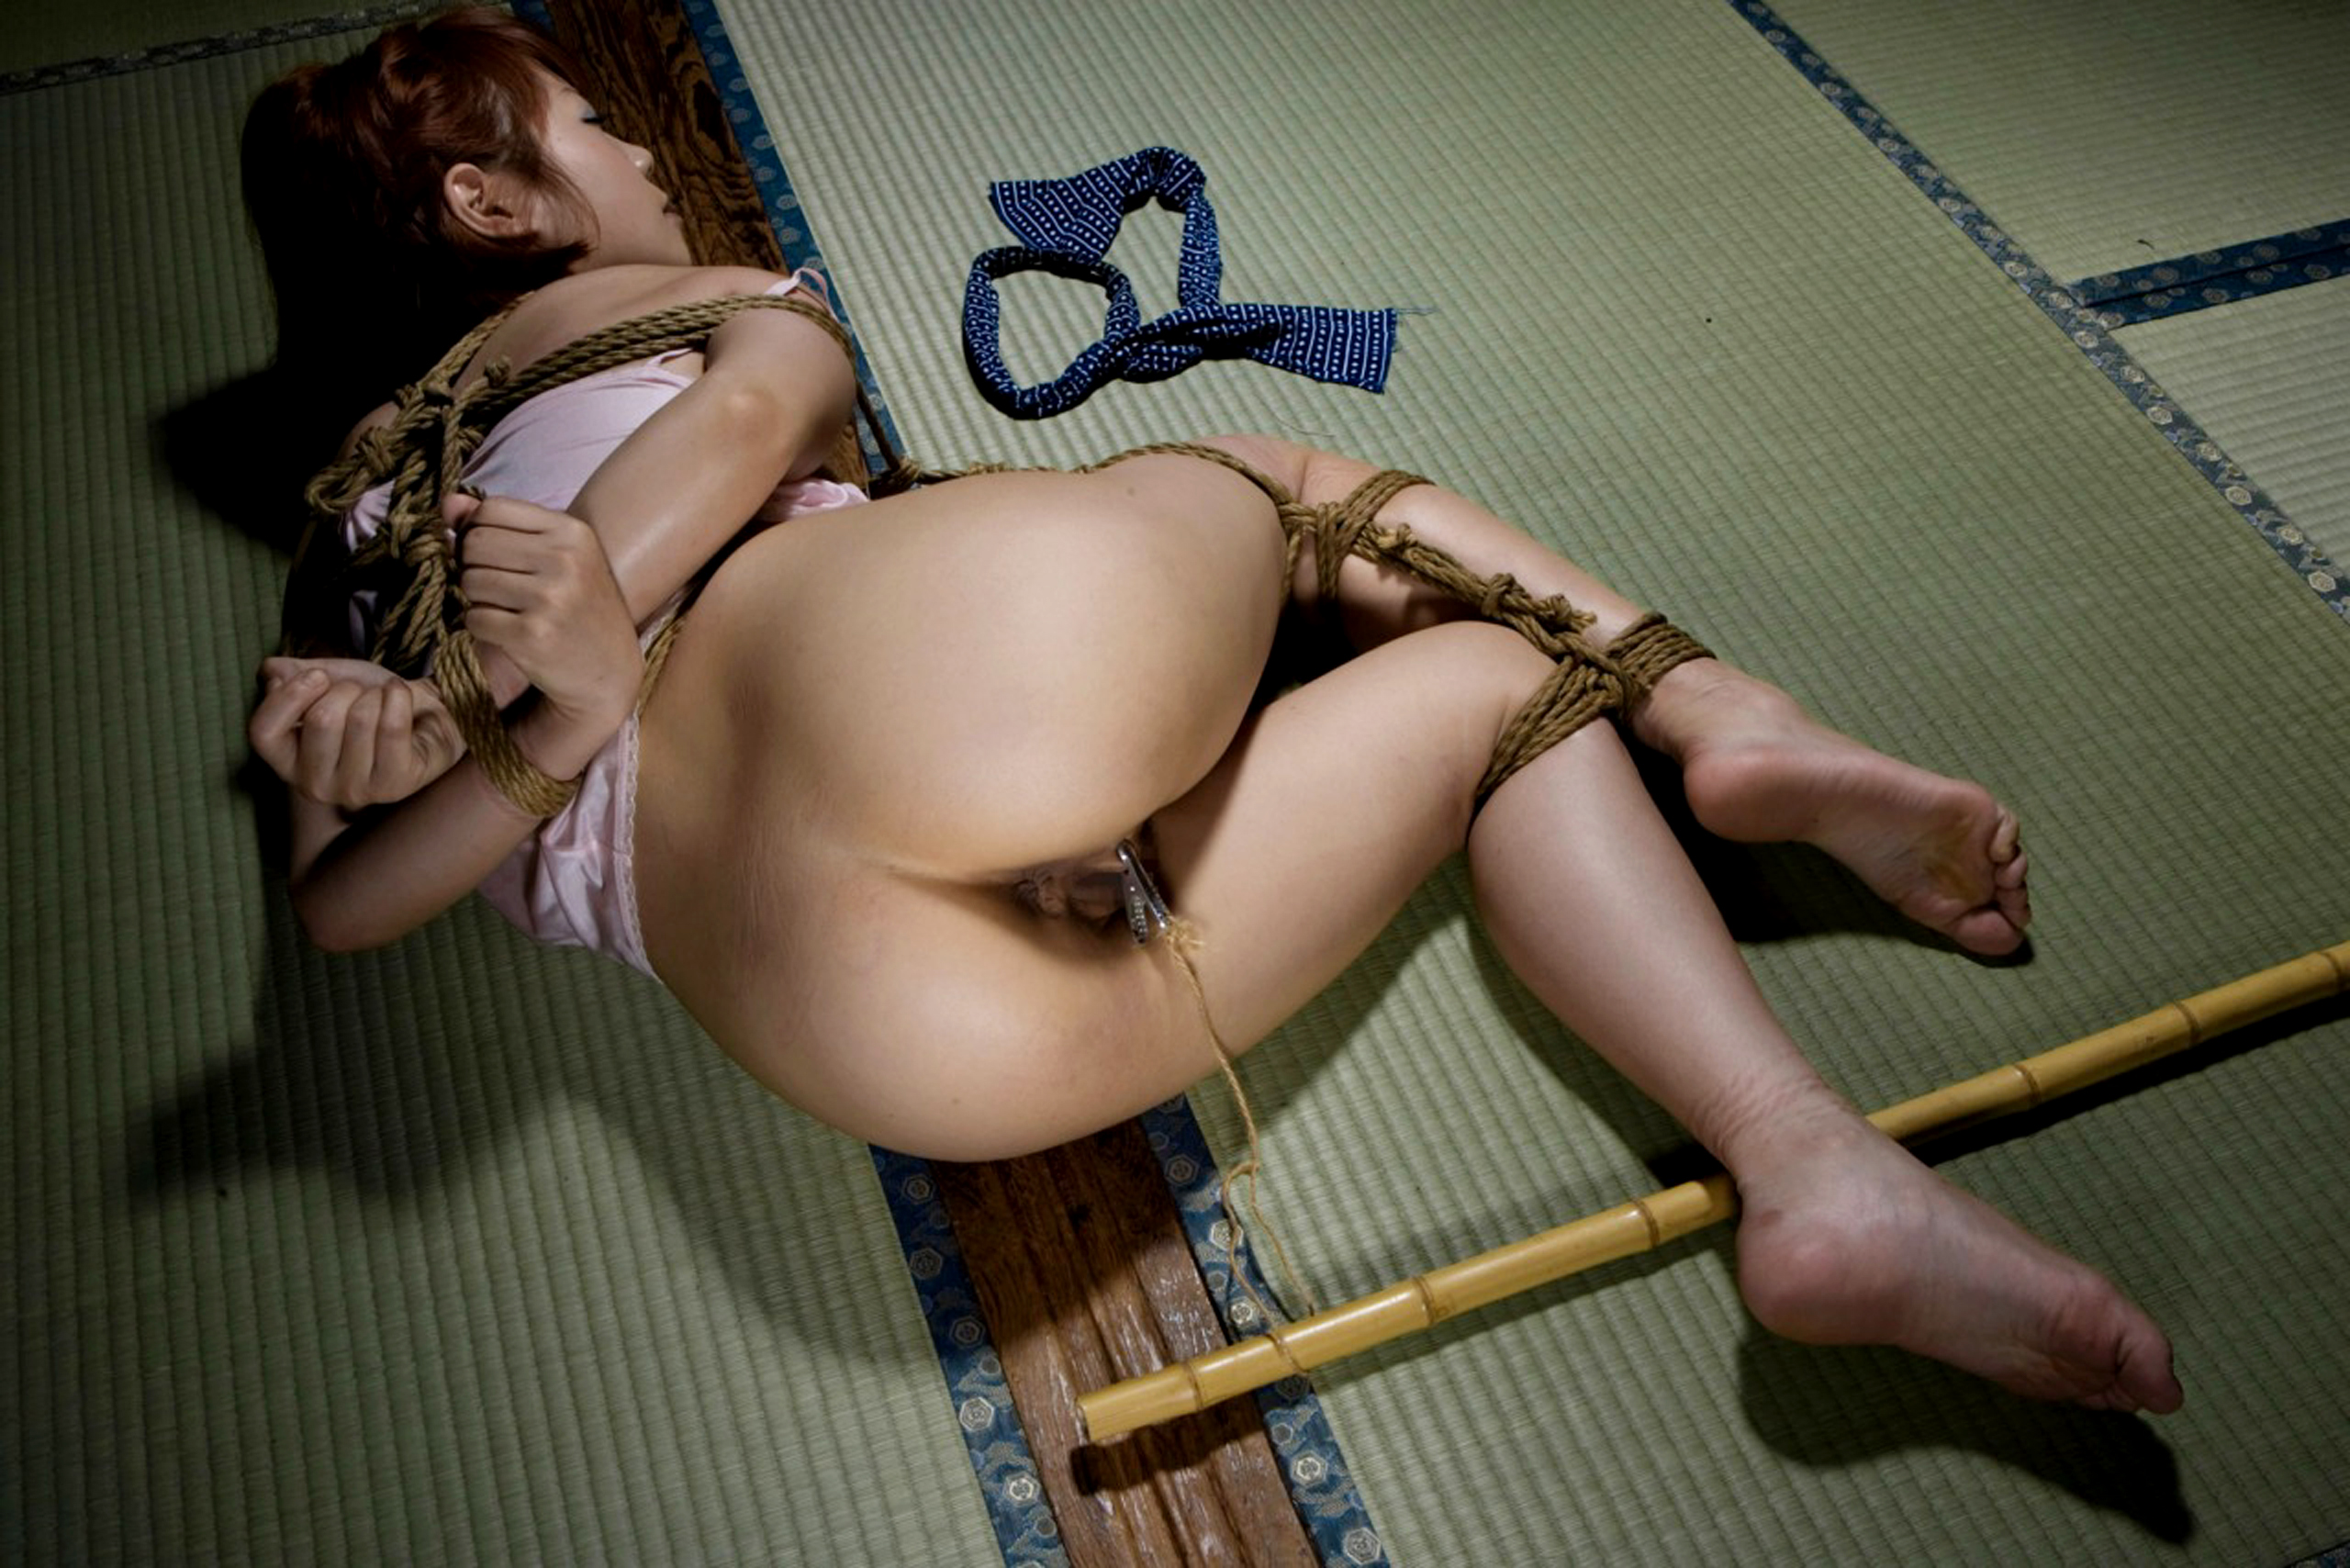 Asian girl bondage fetish